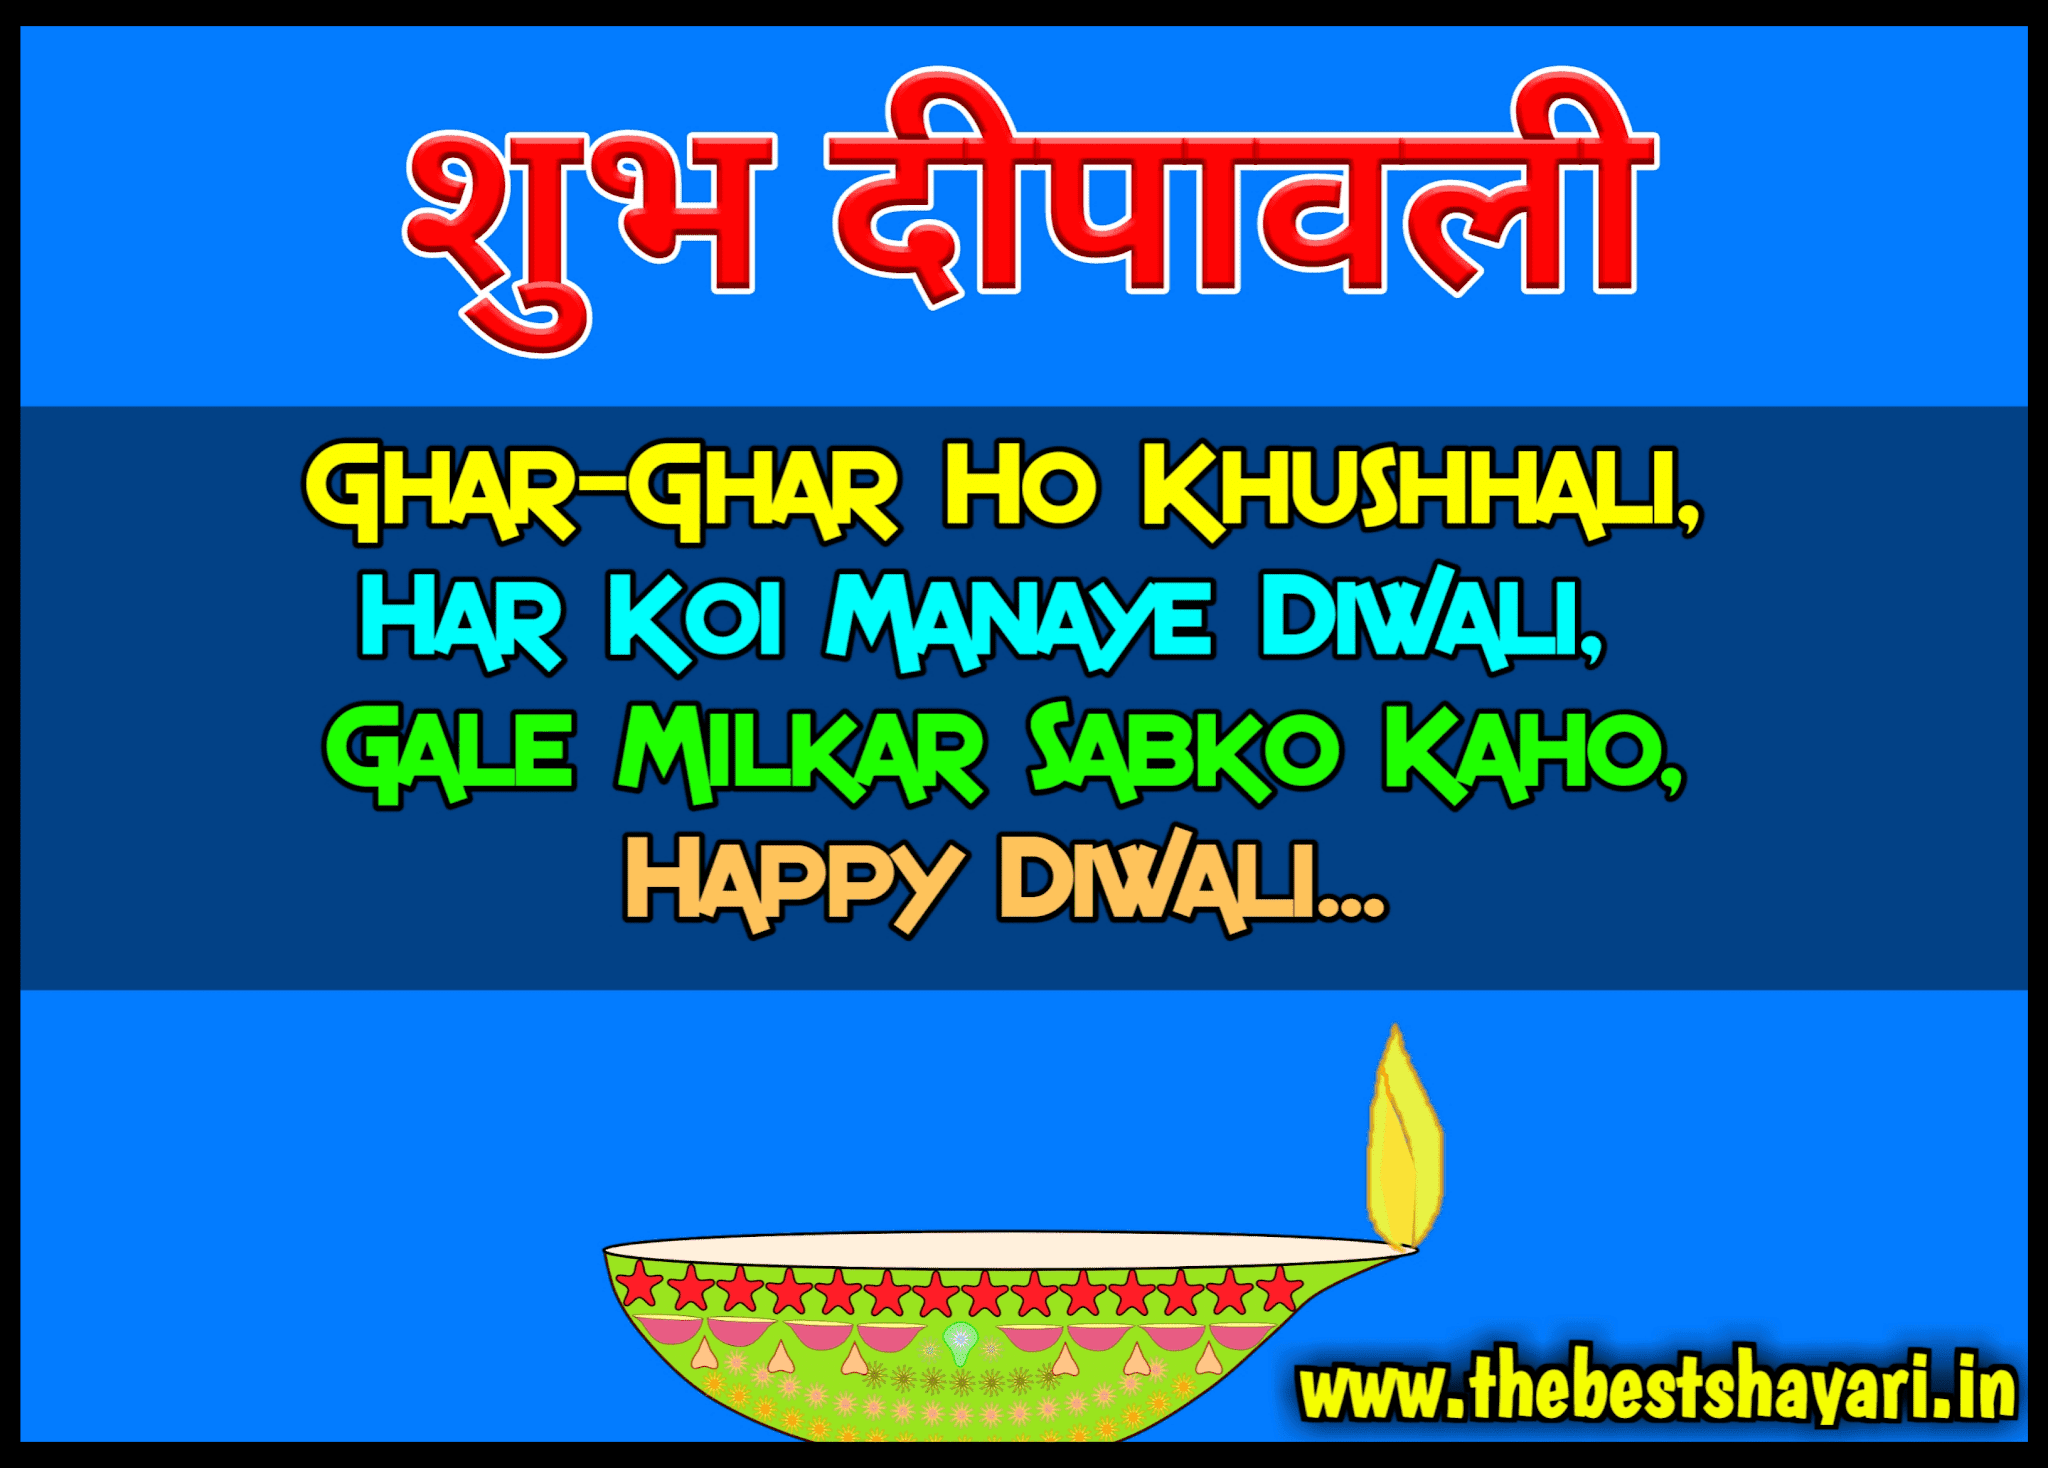 diwali wishes with images